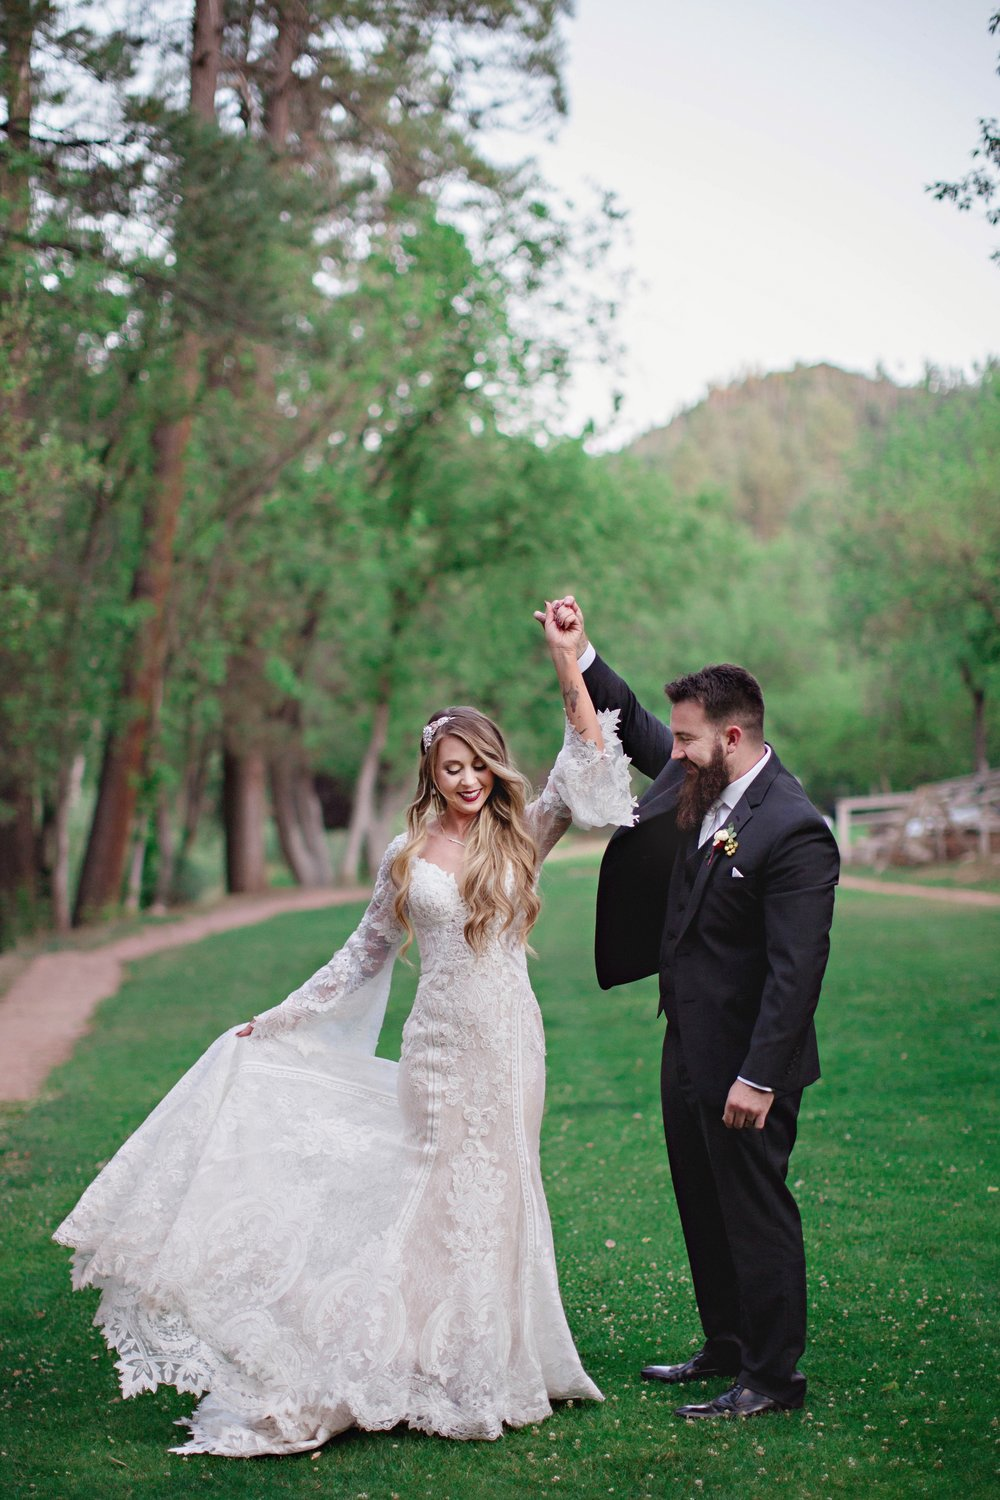 weddings-payson-18.jpg